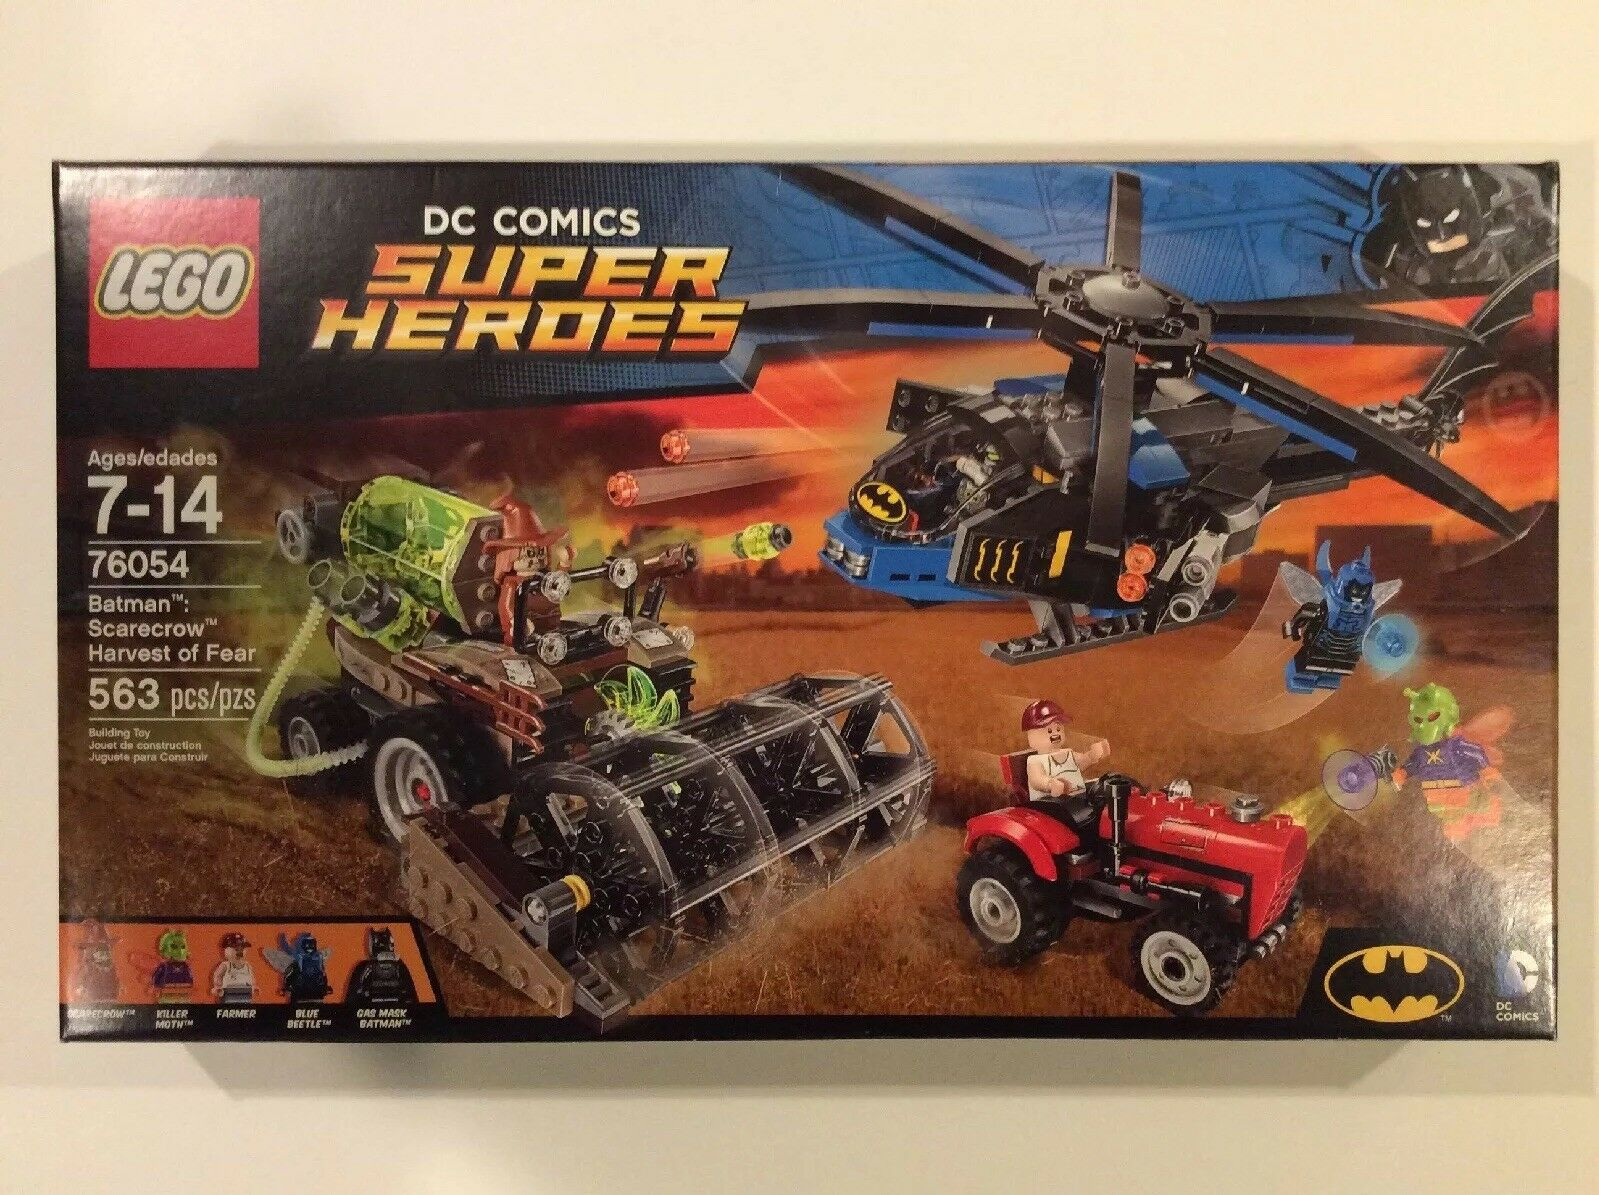 Lego Batman Scarecrow Harvest Of Fear NRFB